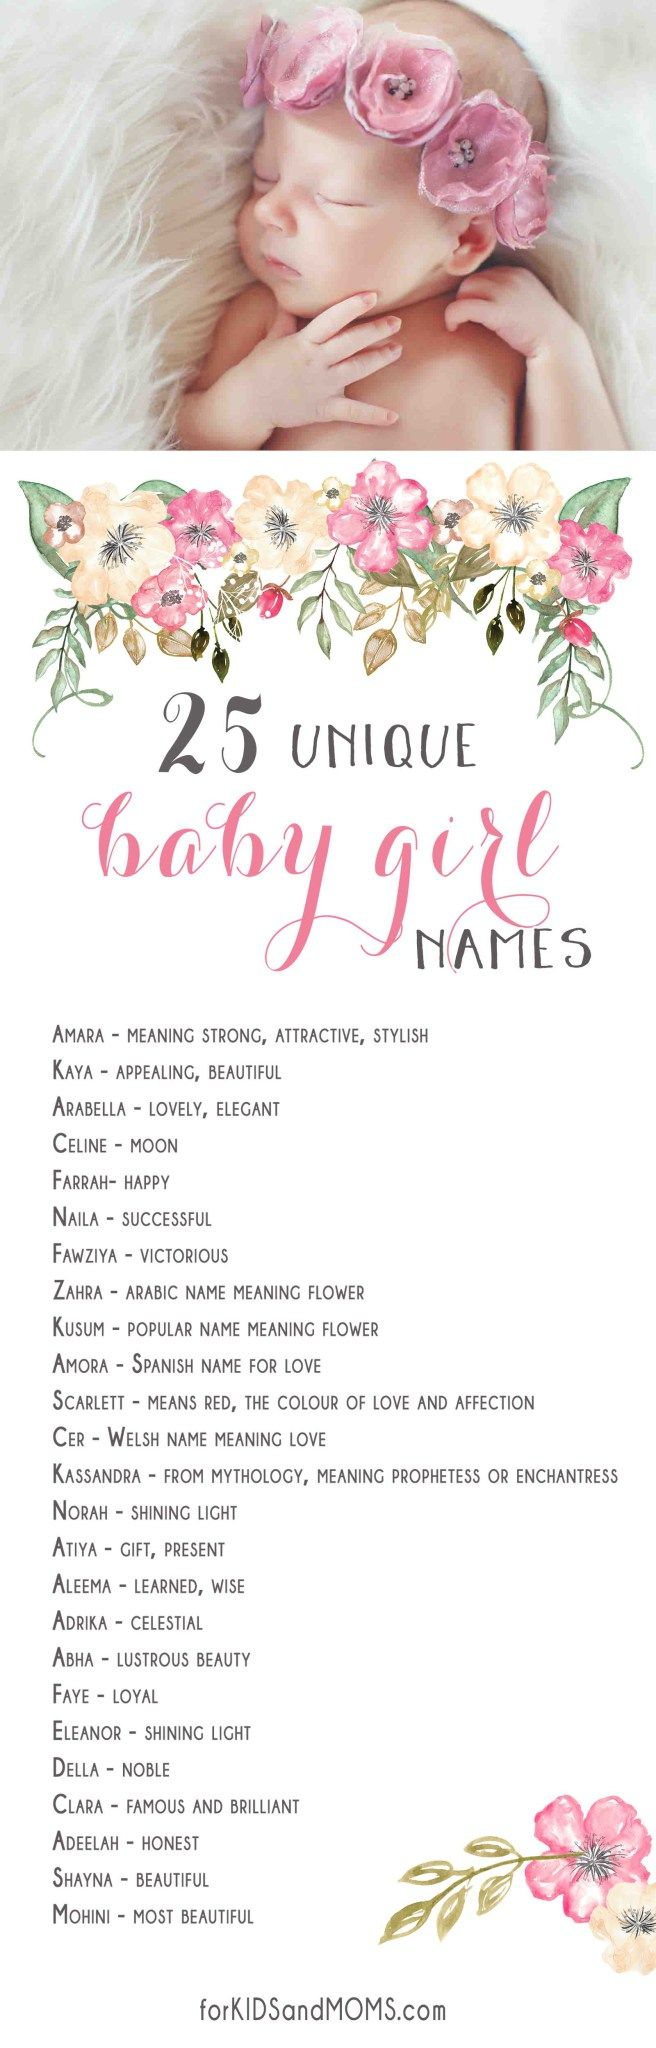 25 unique baby girl names and meanings list forkidsandmoms 25 unique baby girl names and meanings list forkidsandmoms negle Gallery